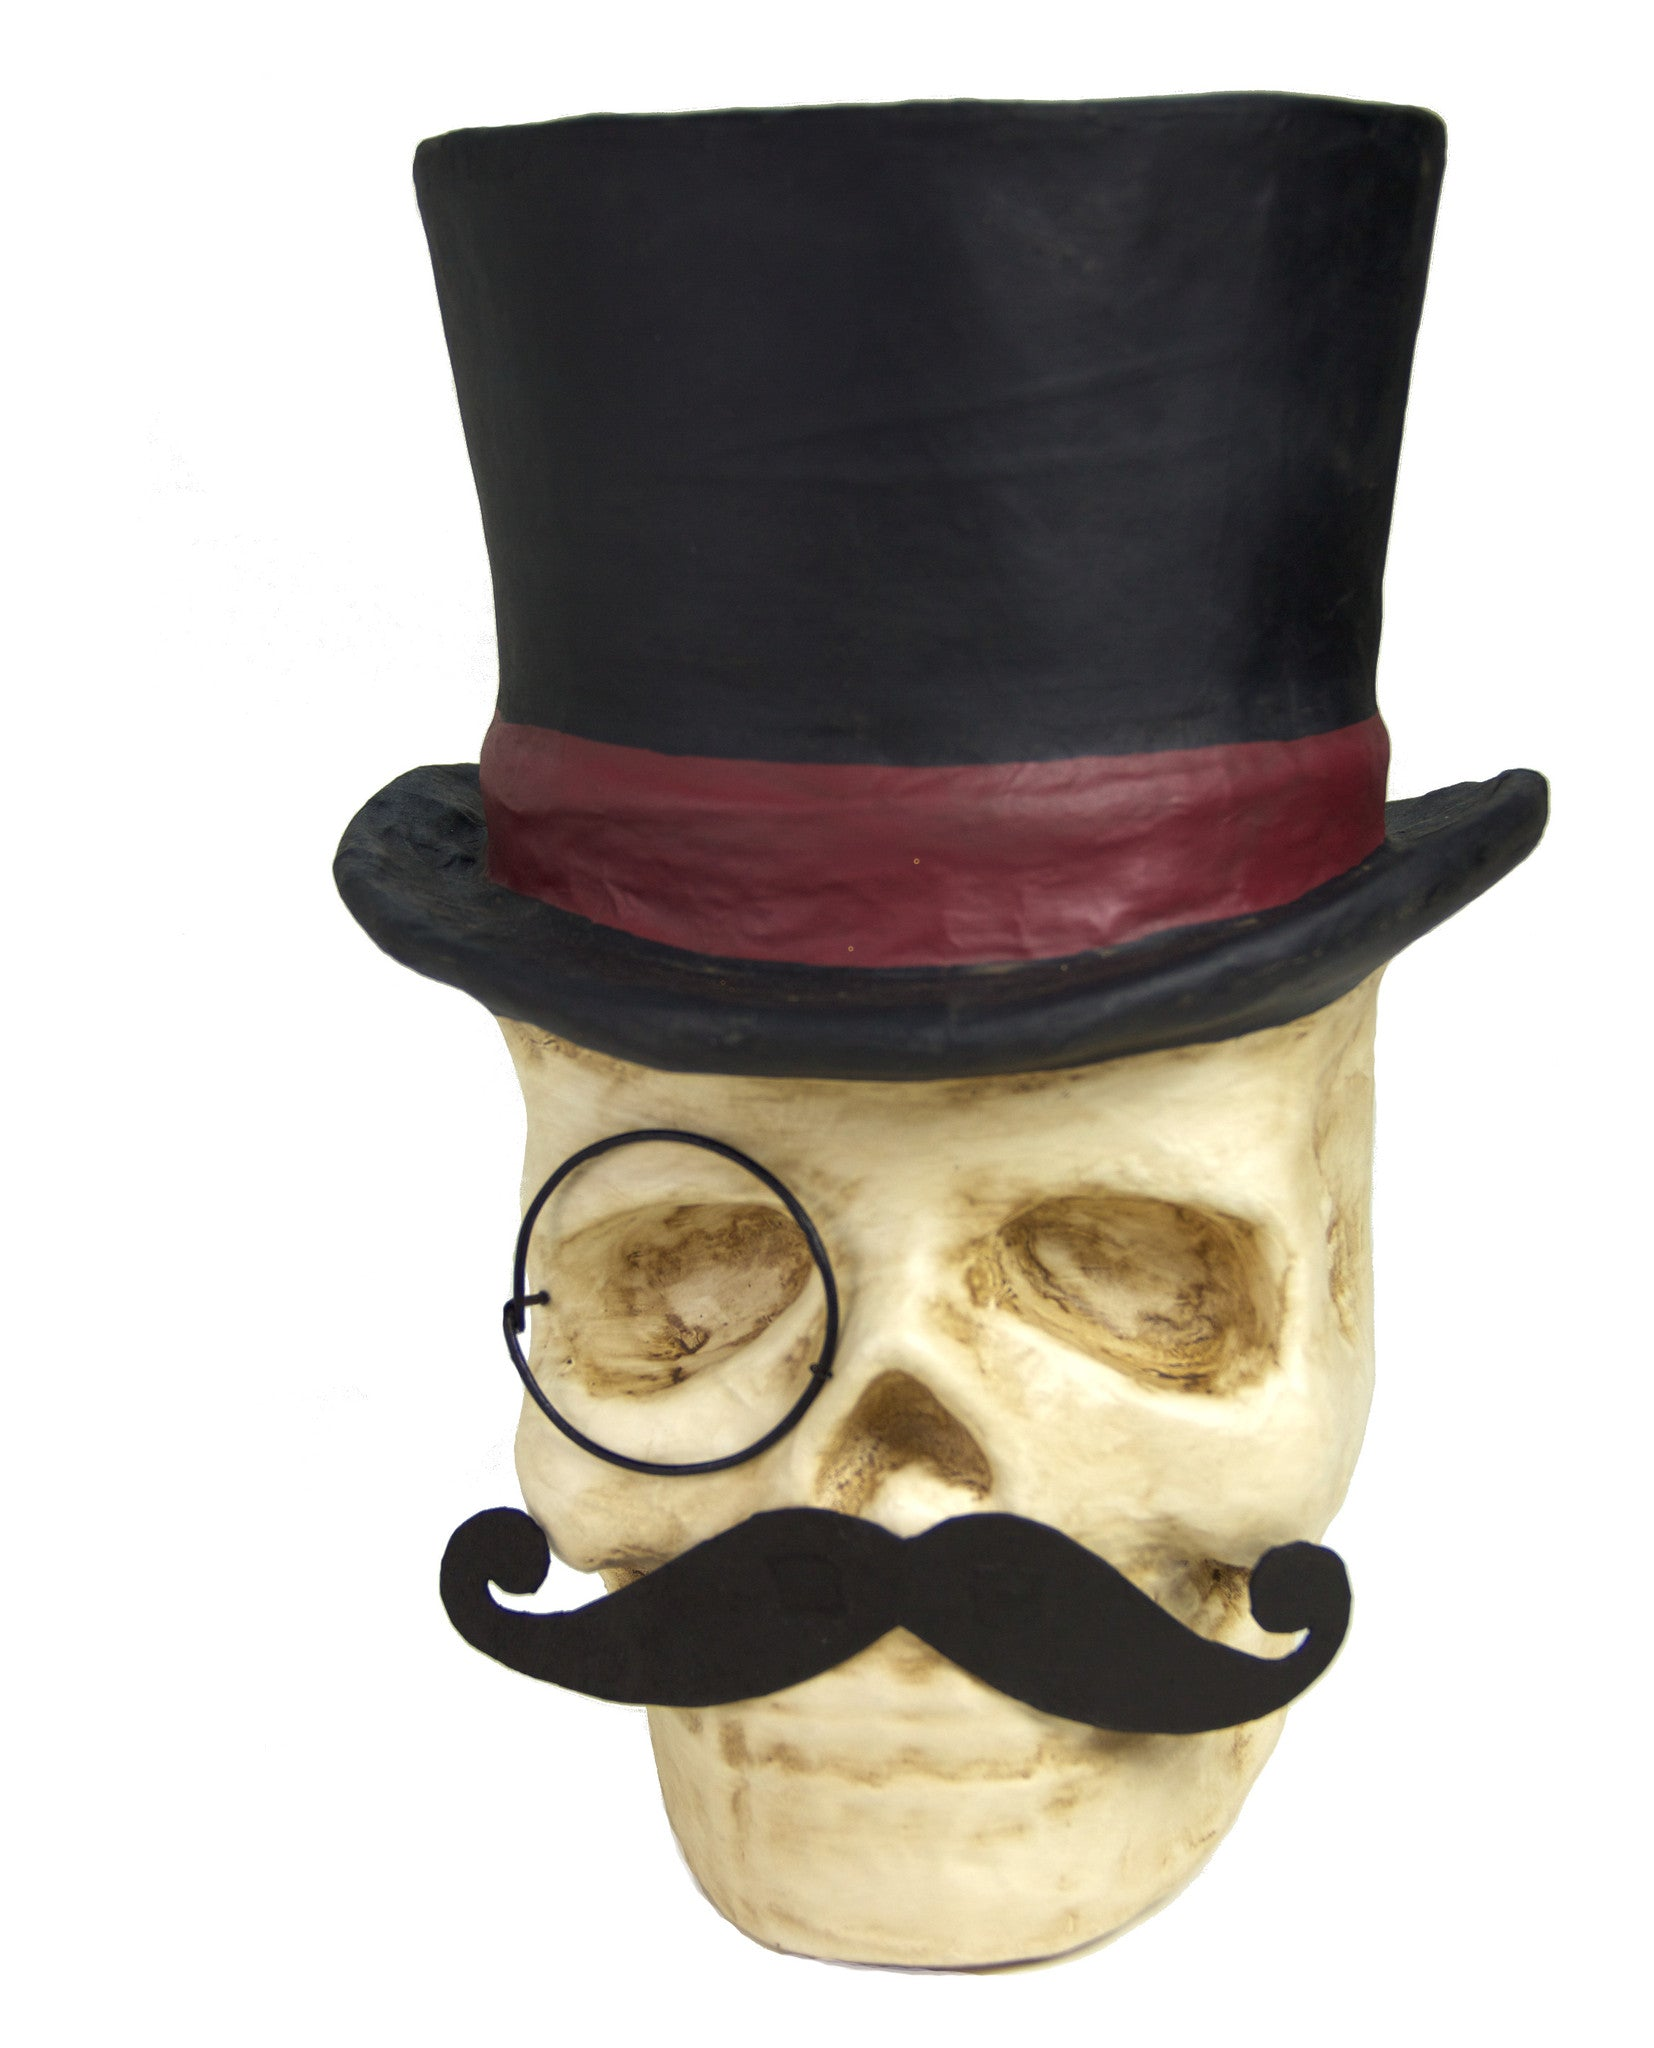 Top Hat Skull with Monocle & Mustache Candy Bucket - Paper Mache Halloween